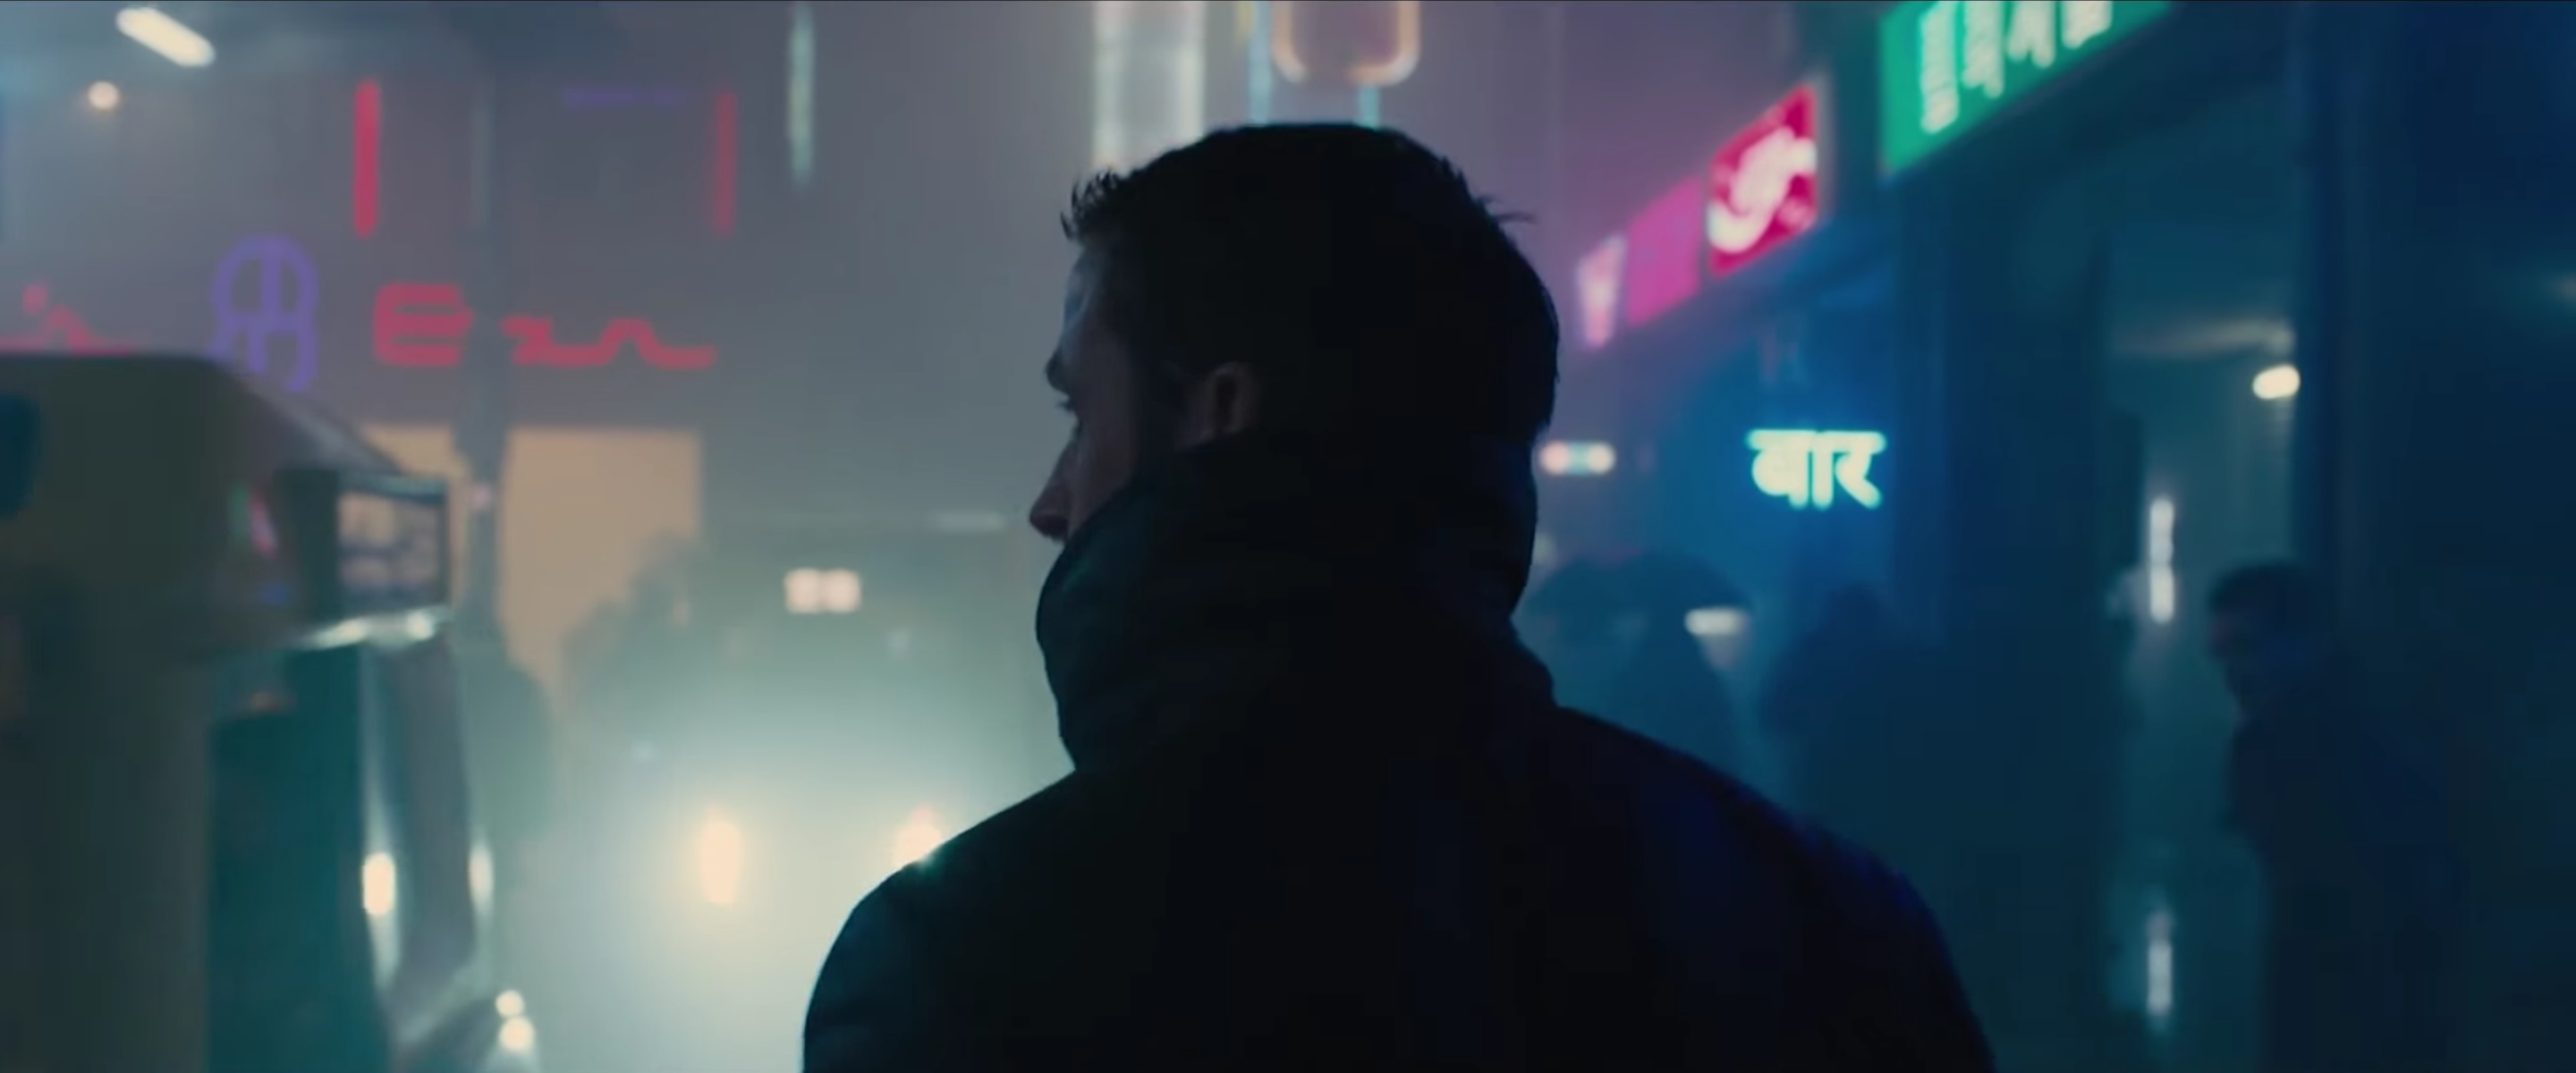 KHS Digital Media Arts  The Cinematography of Blade Runner 2049 Roger Deakins was the cinematographer and he has worked on films like The  Shawshank Redemption  Skyfall  and Sicario  I highly recommend you see  Blade